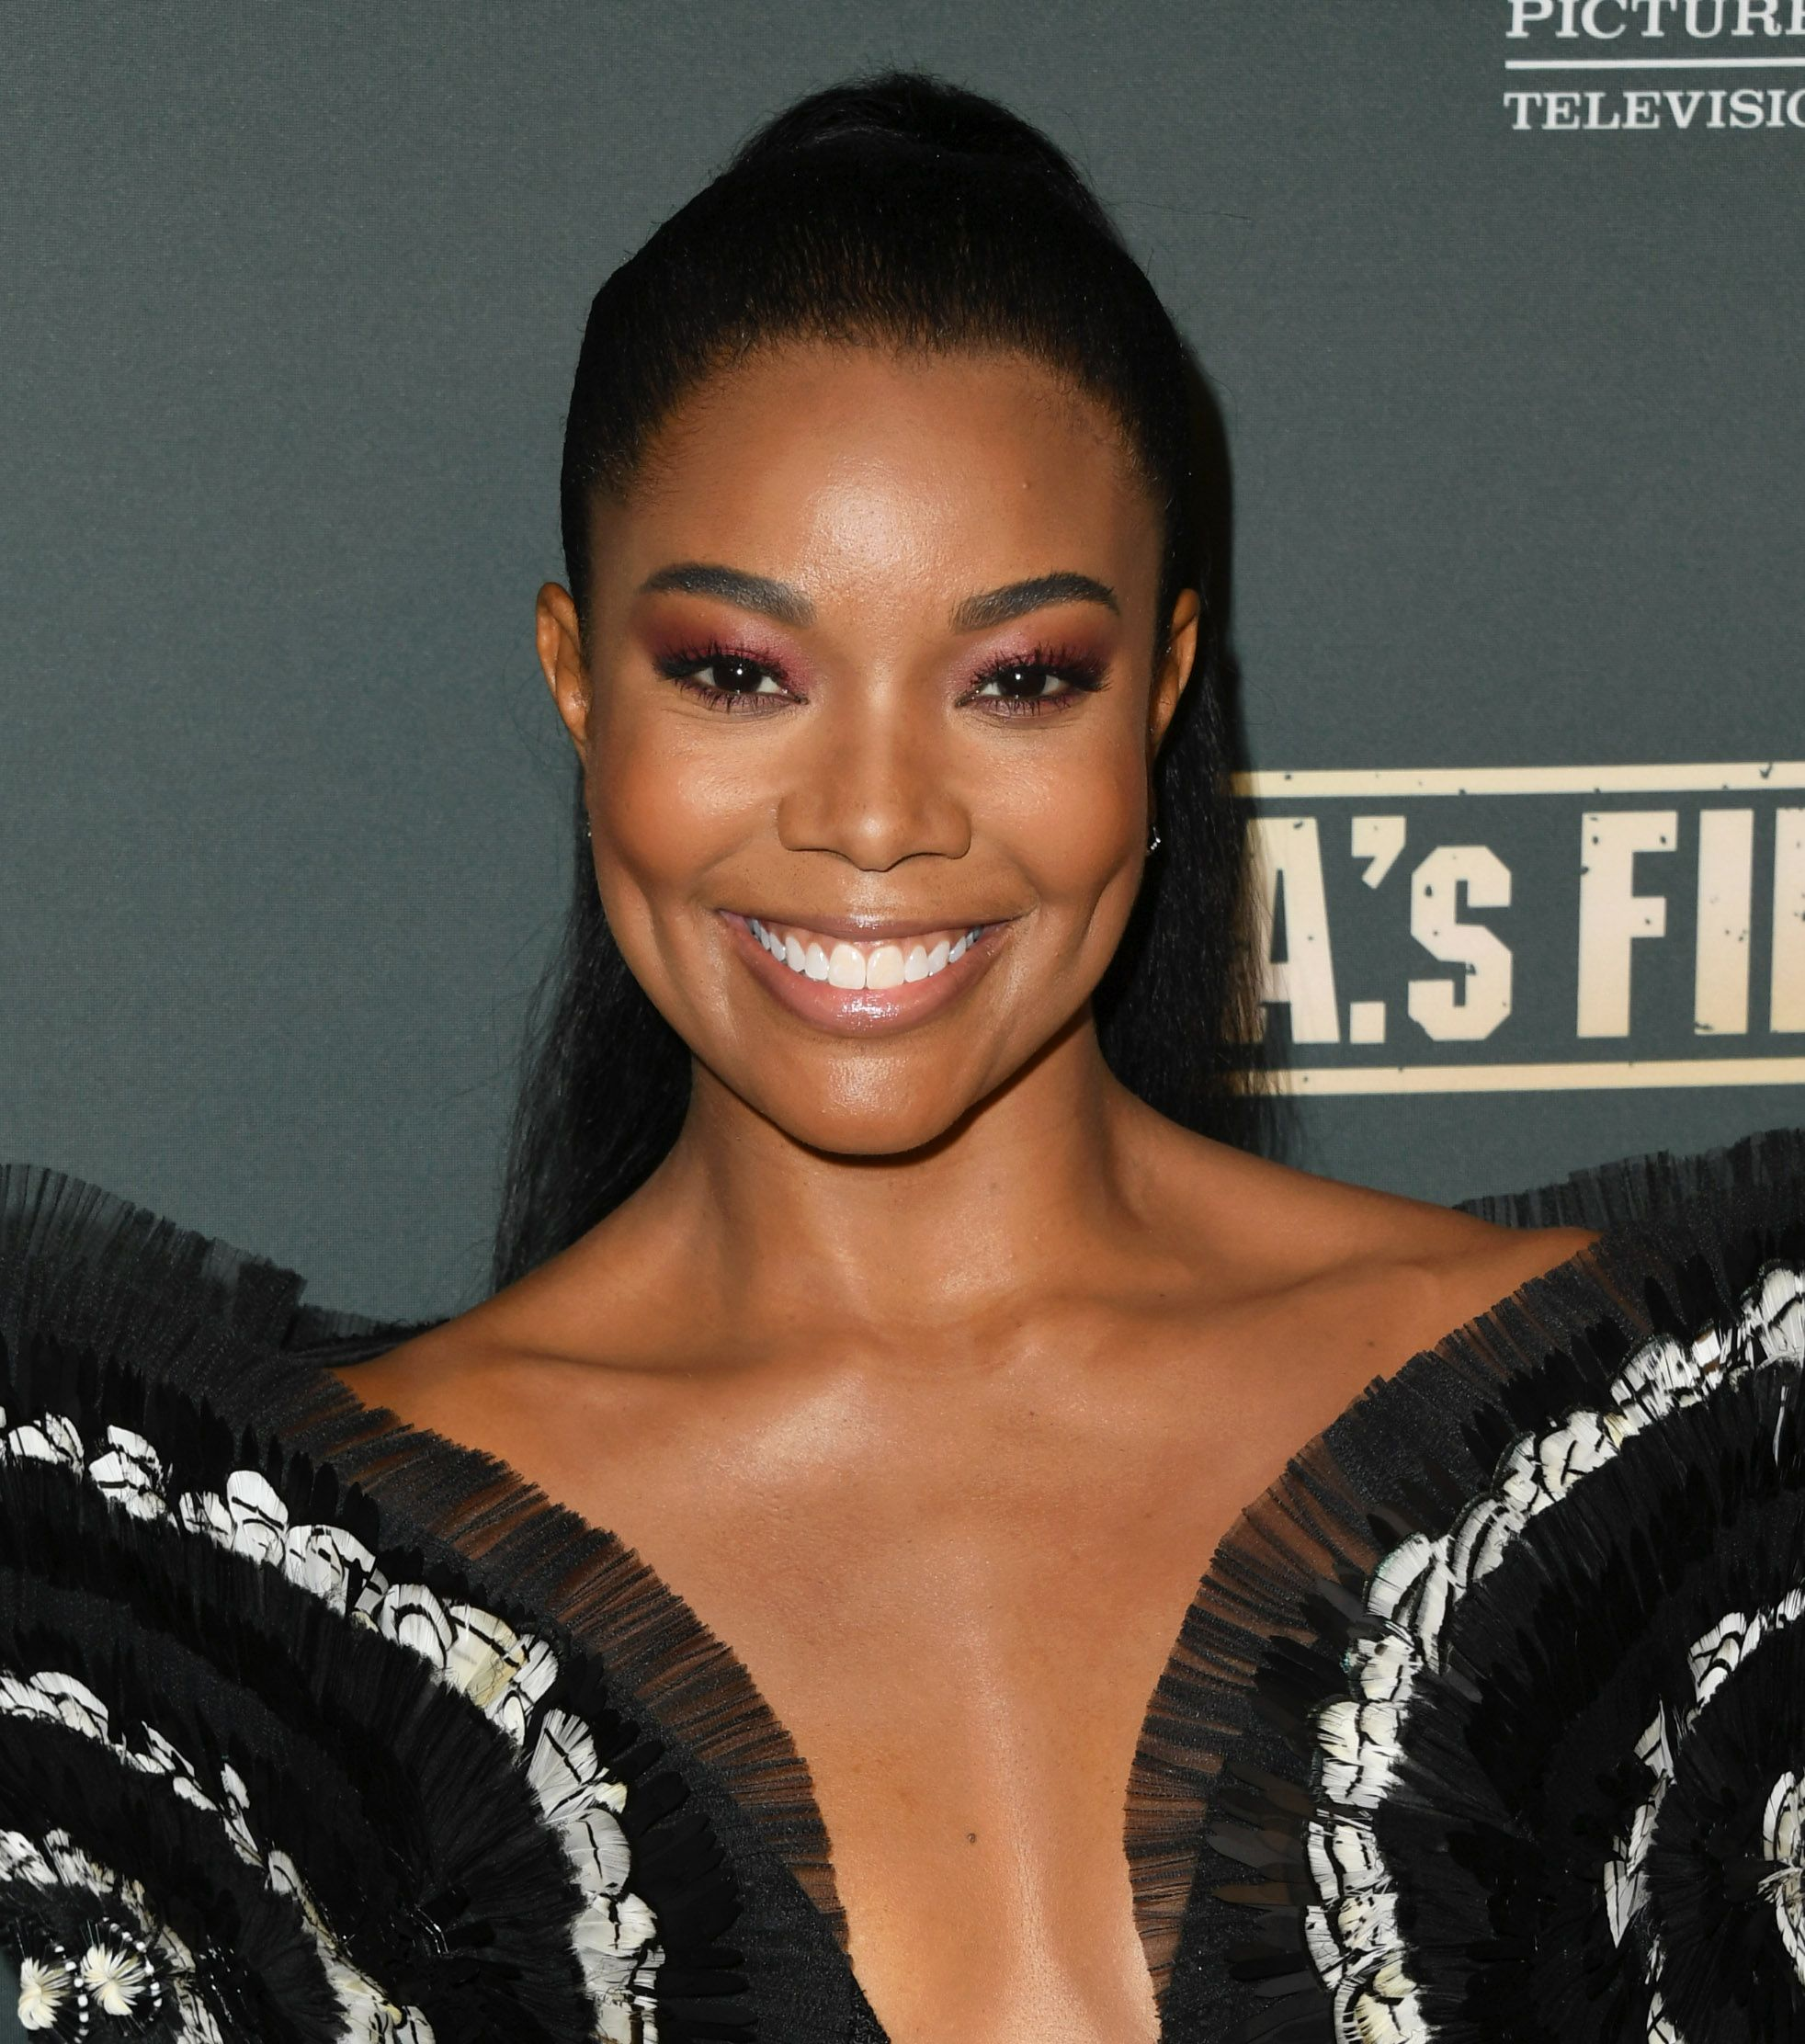 gabrielle-union-all-black-friends-california-fire-fans-return-to-stadiums-latest-news-global-world-stories-tuesday-september-2020-style-rave